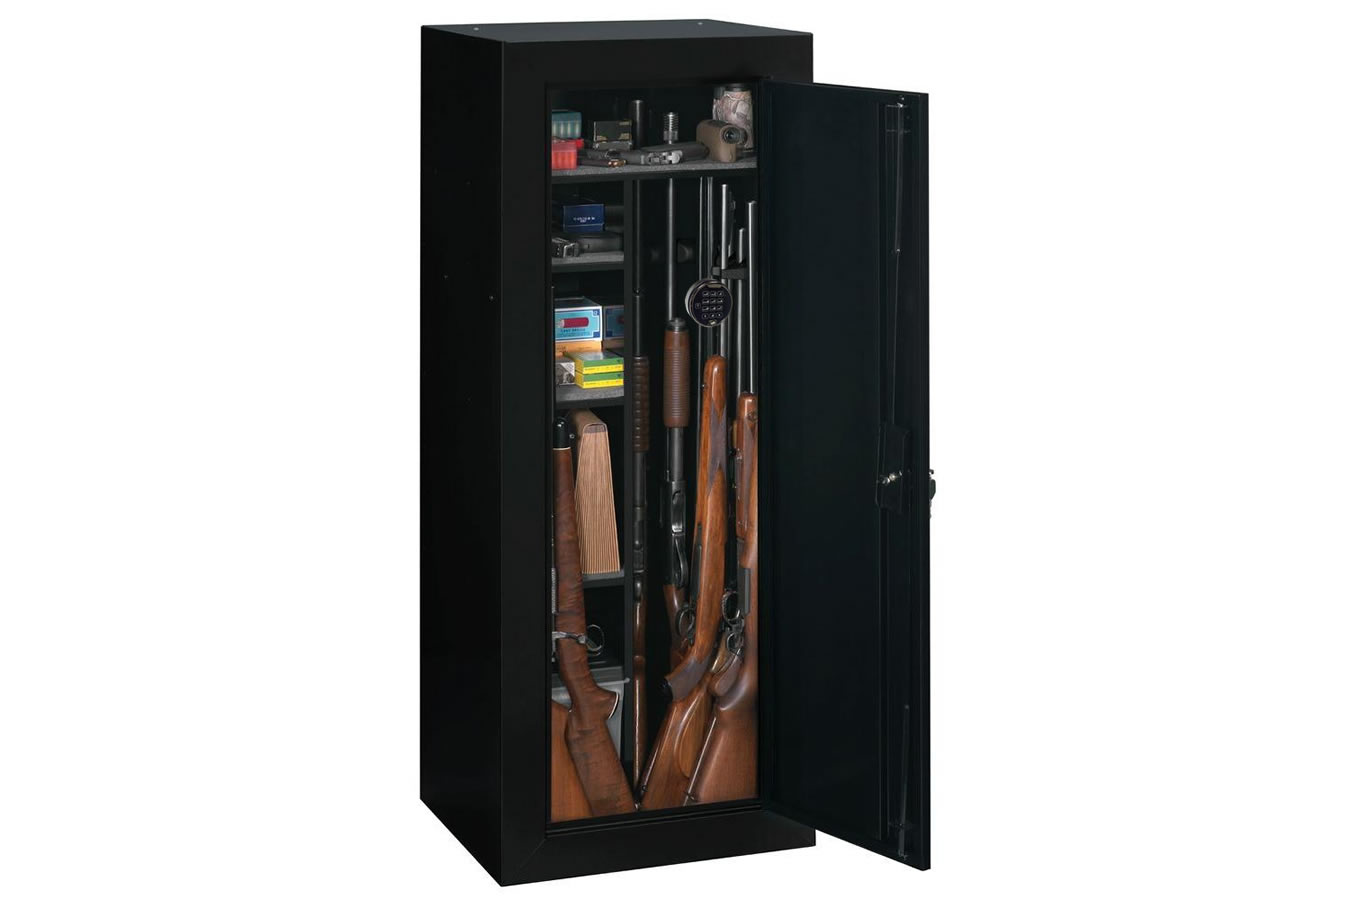 Product 200588645 200588645 in addition 49054339 additionally Firepower Ammo Cabi further Ks 133 Key Safe Box Ks Series Cheap Electronic Key Box together with Sms 37 Ff521. on storage cabinet locking system